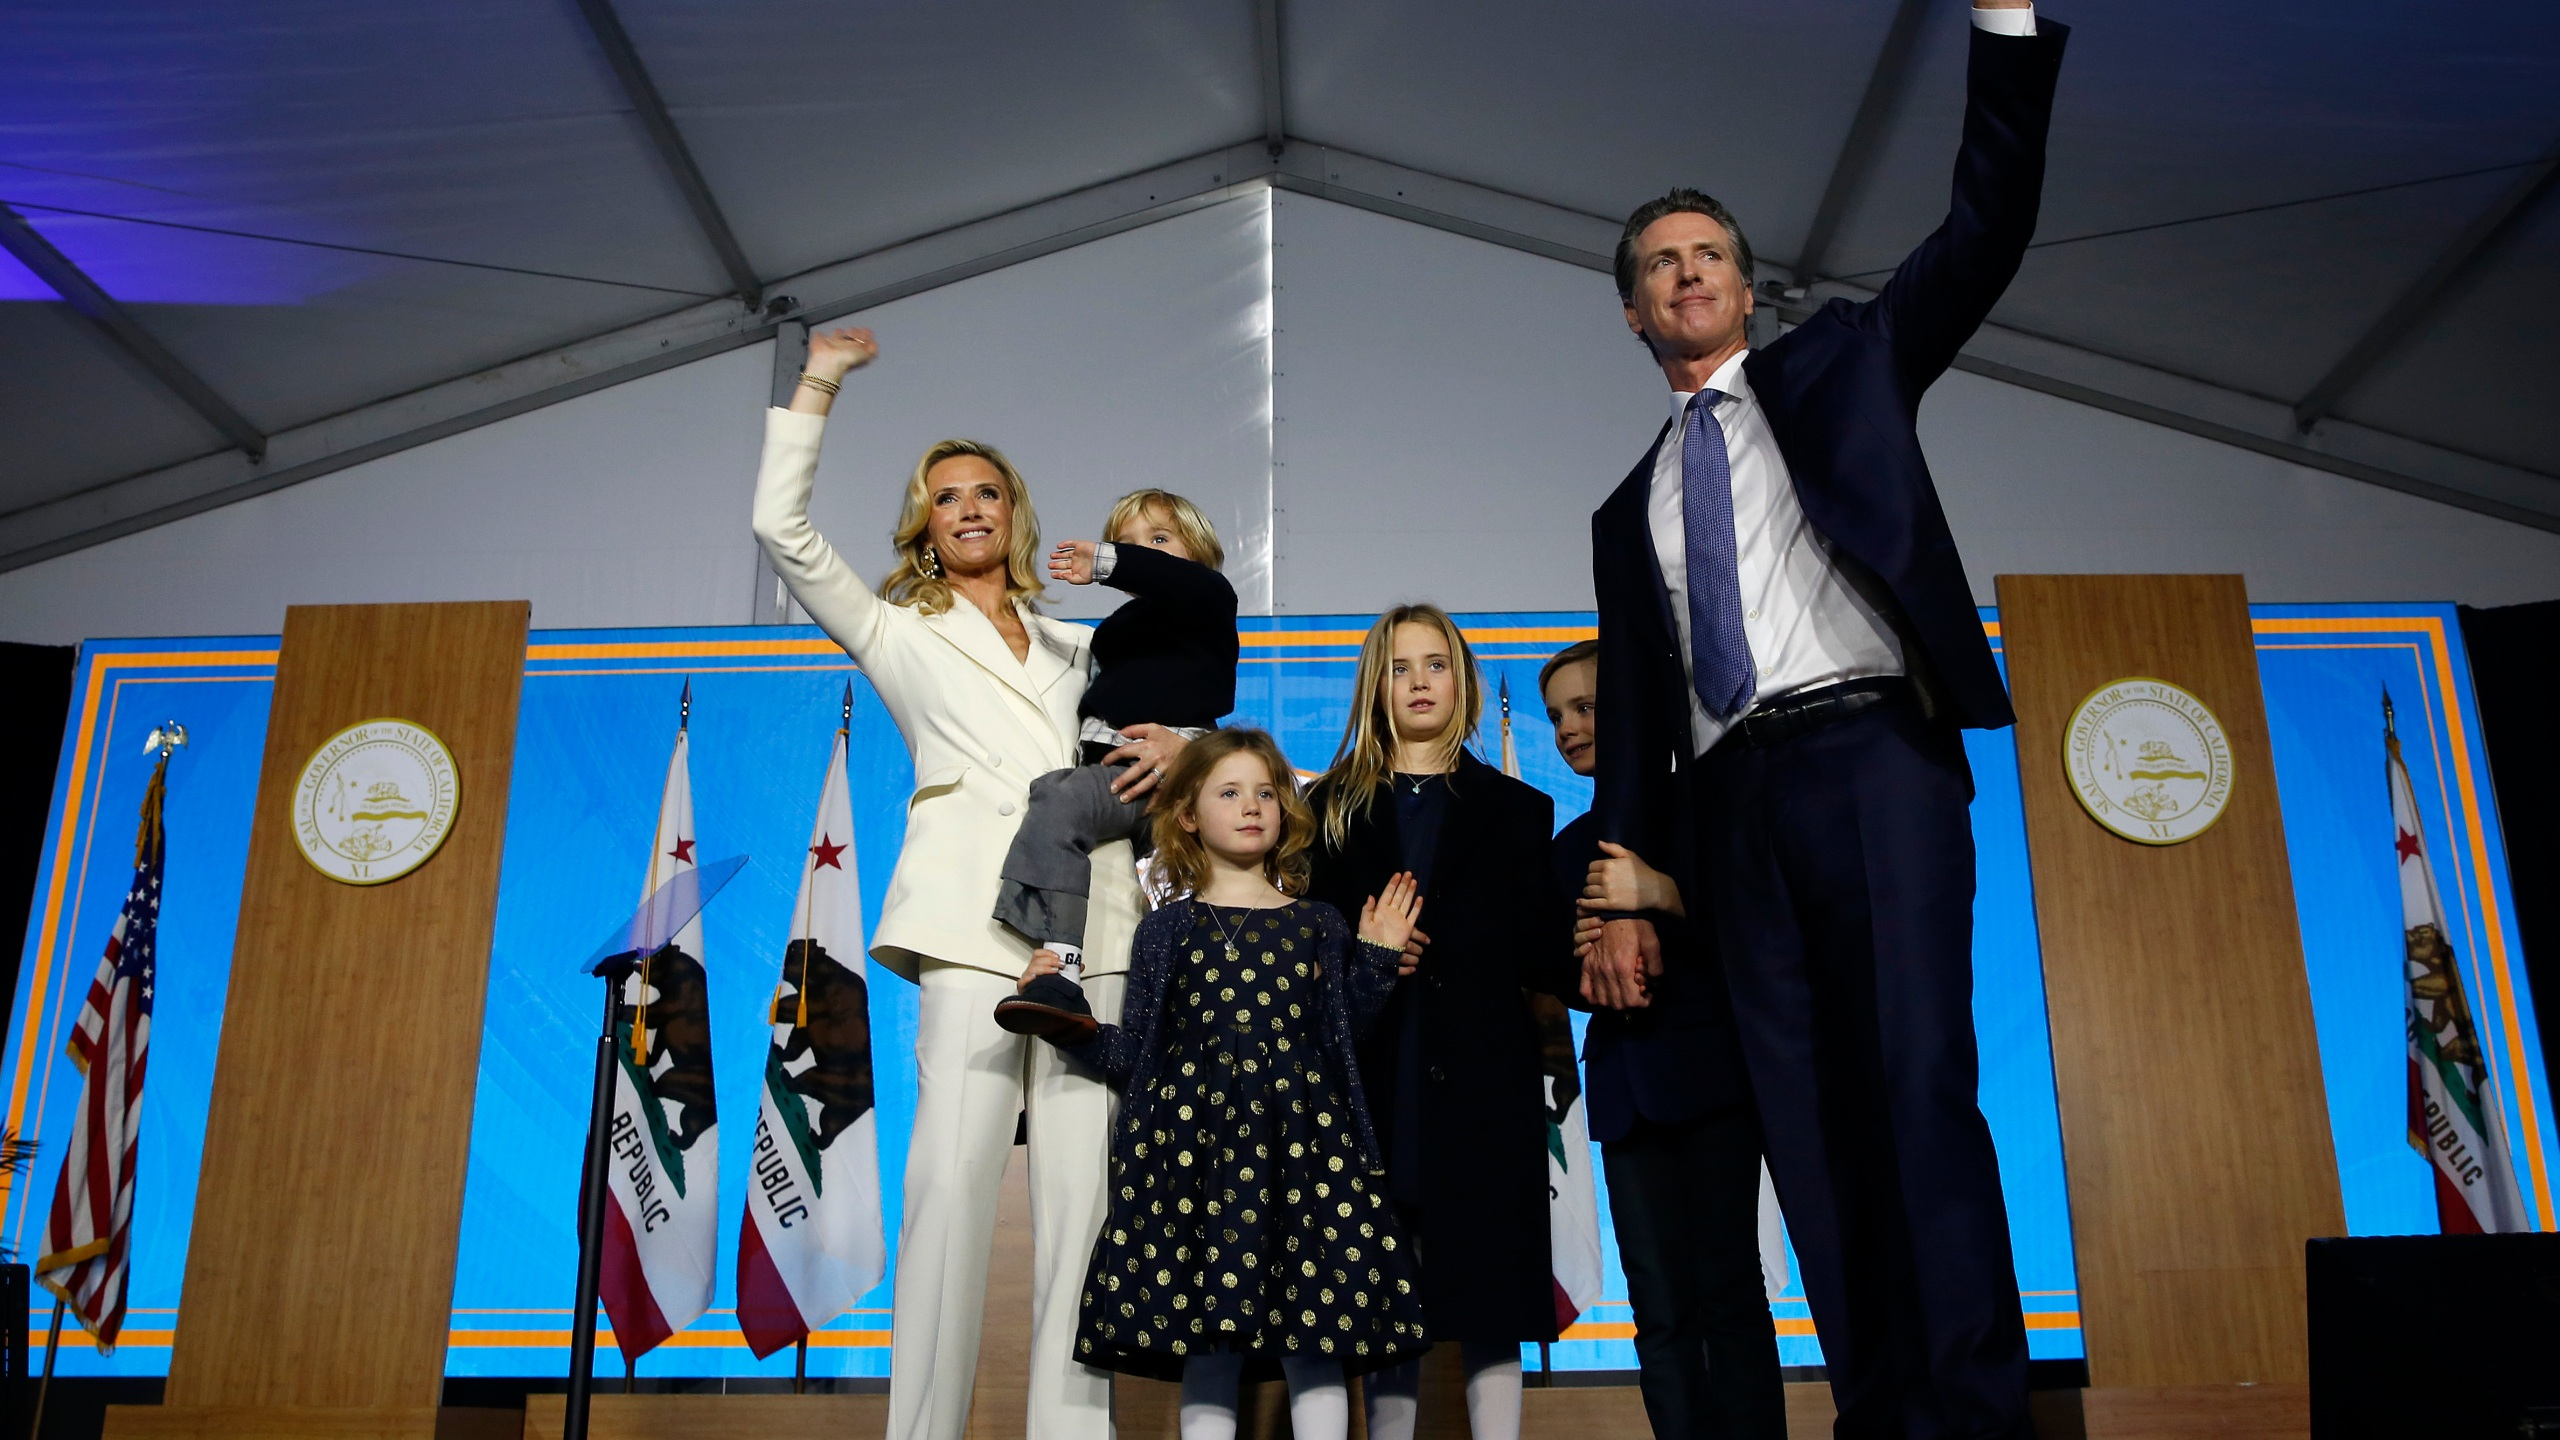 In this Jan. 7, 2019, file photo California Governor Gavin Newsom his wife, Jennifer Siebel Newsom, and their children wave after taking the oath office during his inauguration as 40th Governor of California, in Sacramento, Calif. (AP Photo/Rich Pedroncelli, File)